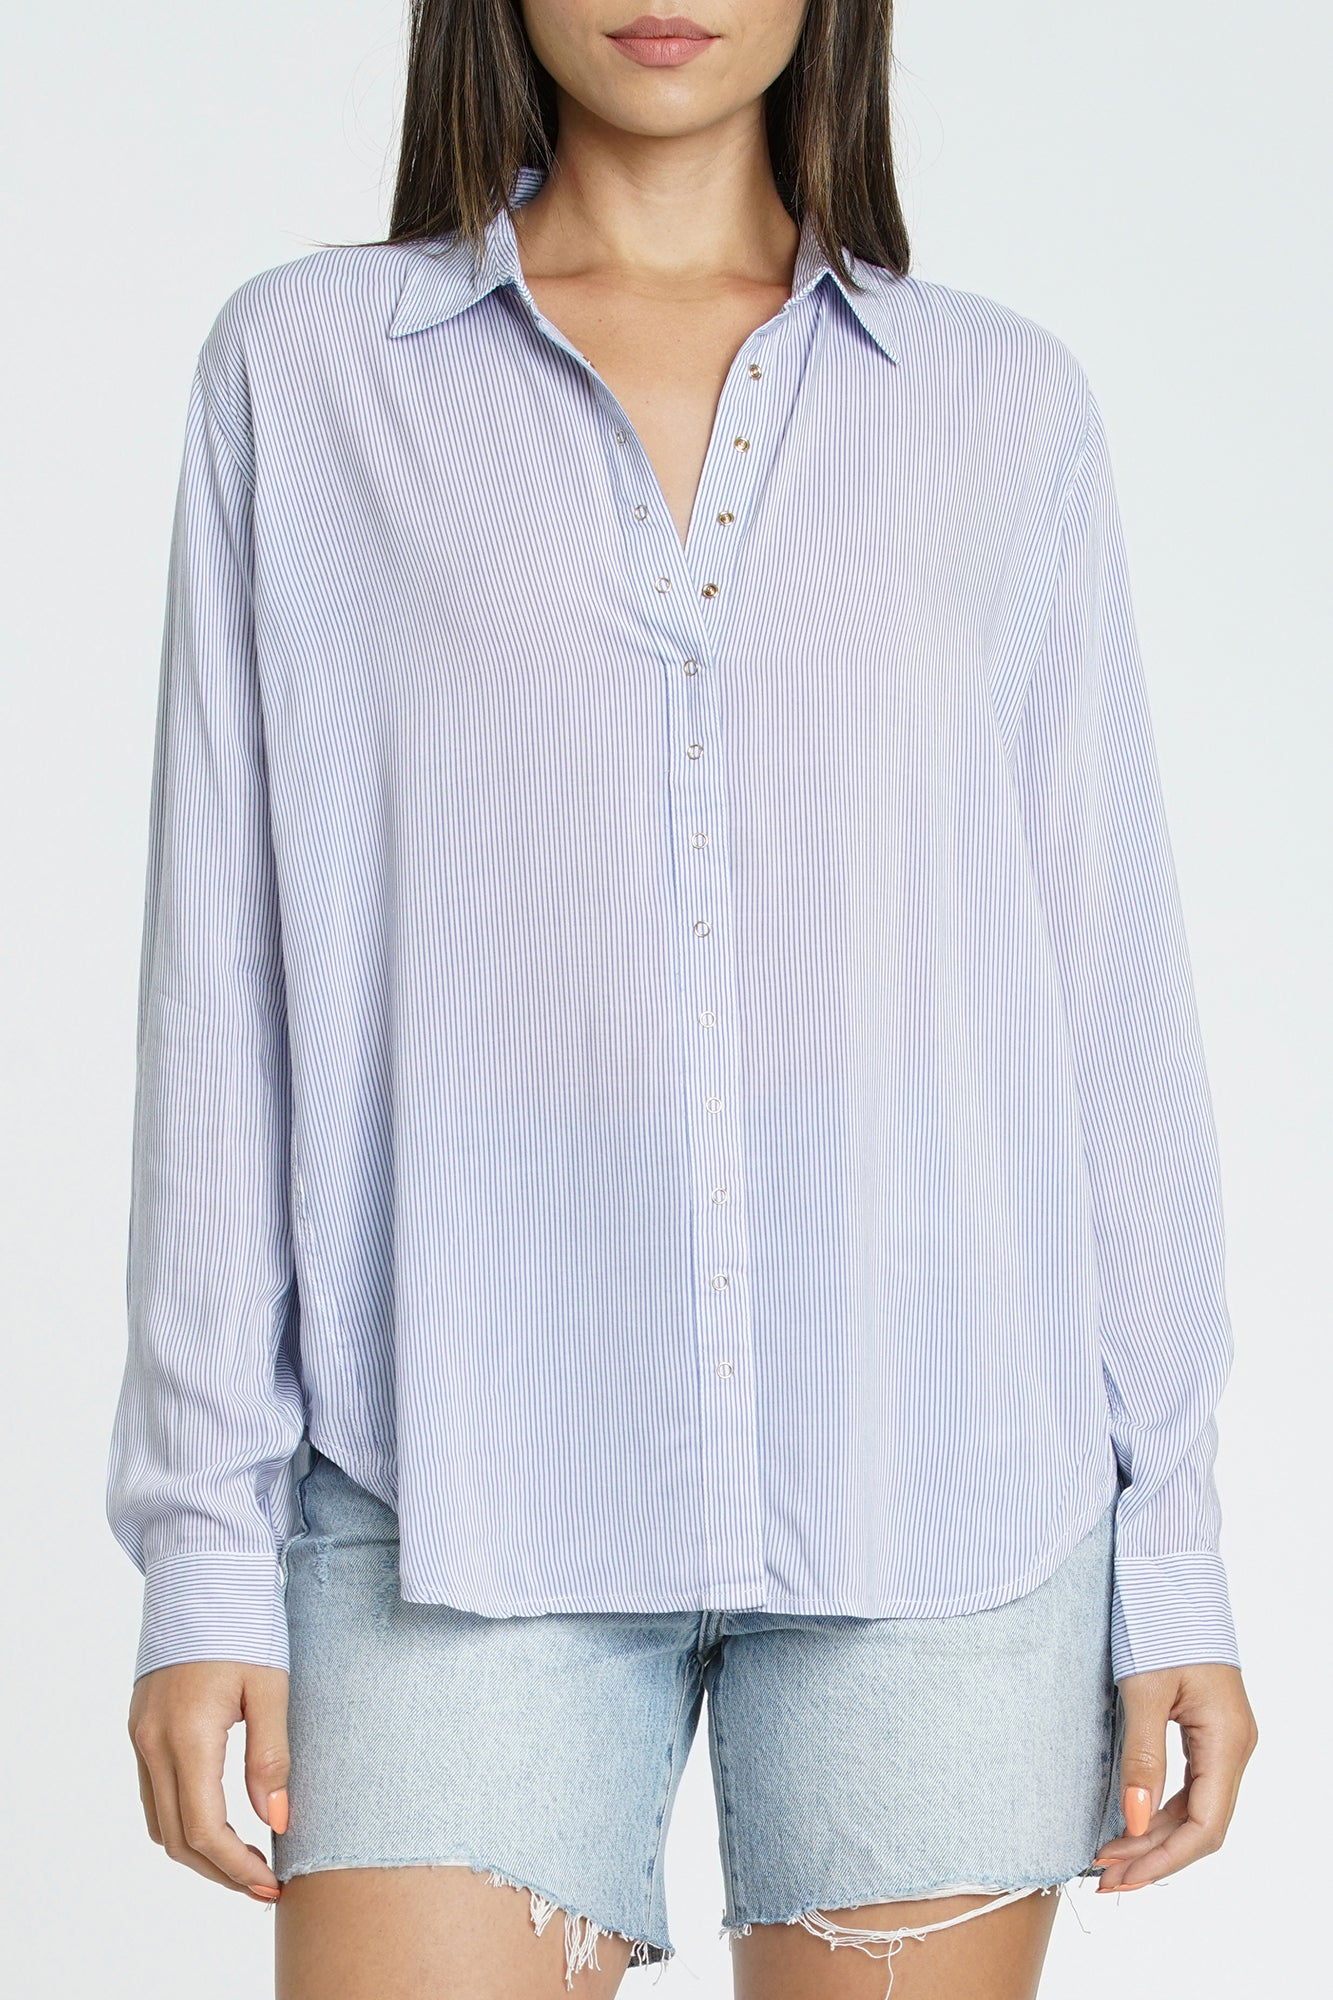 Elle Long Sleeve Snap Front Shirt - Balboa Stripe